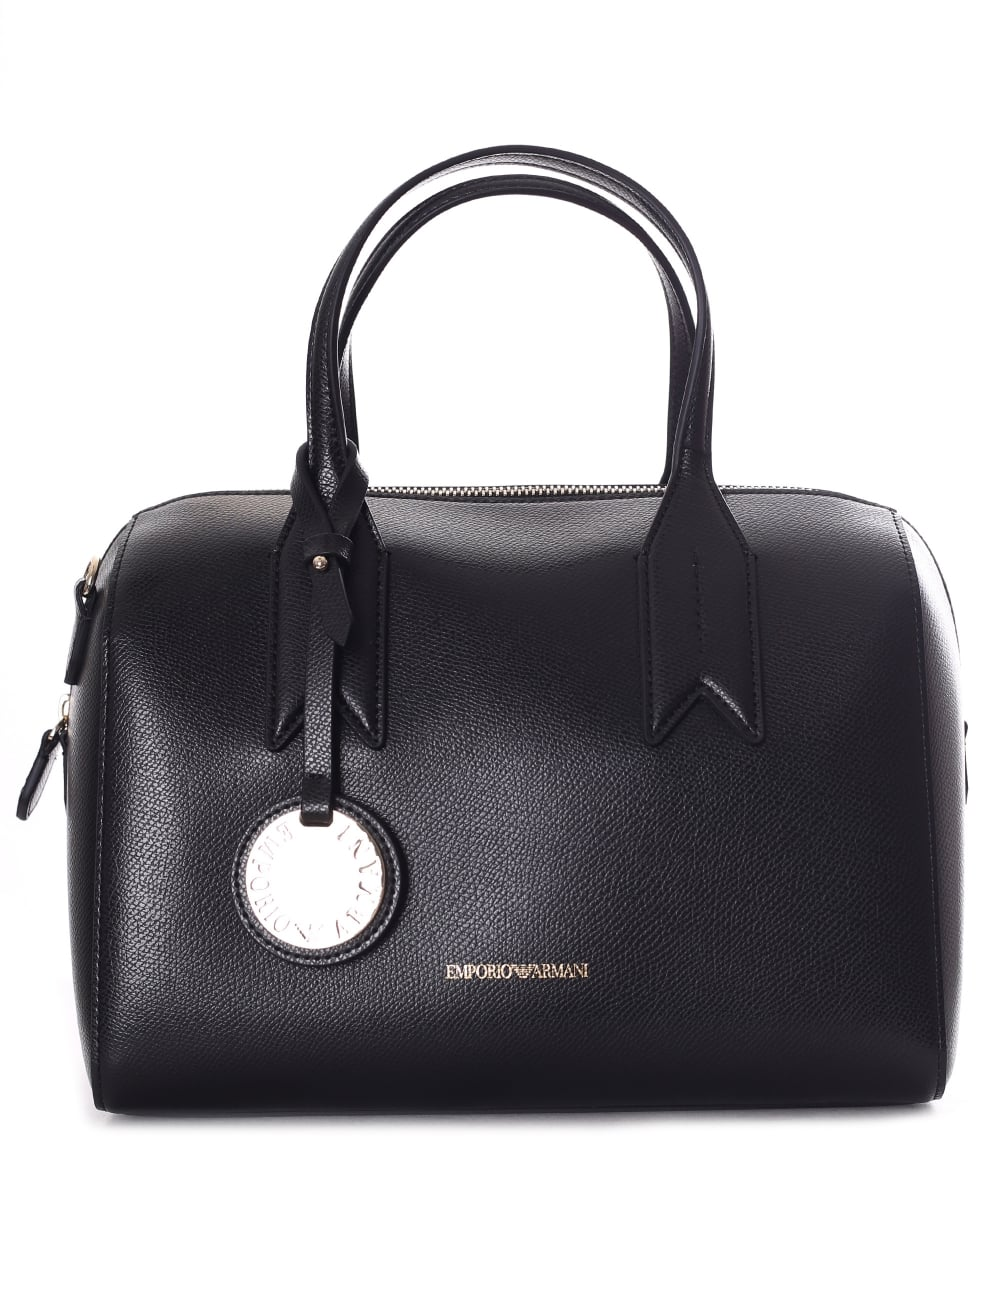 ... Bauletto Womens Bowling Bag best cheap f05a3 c28d4 ... 666b9ee1a8e8f